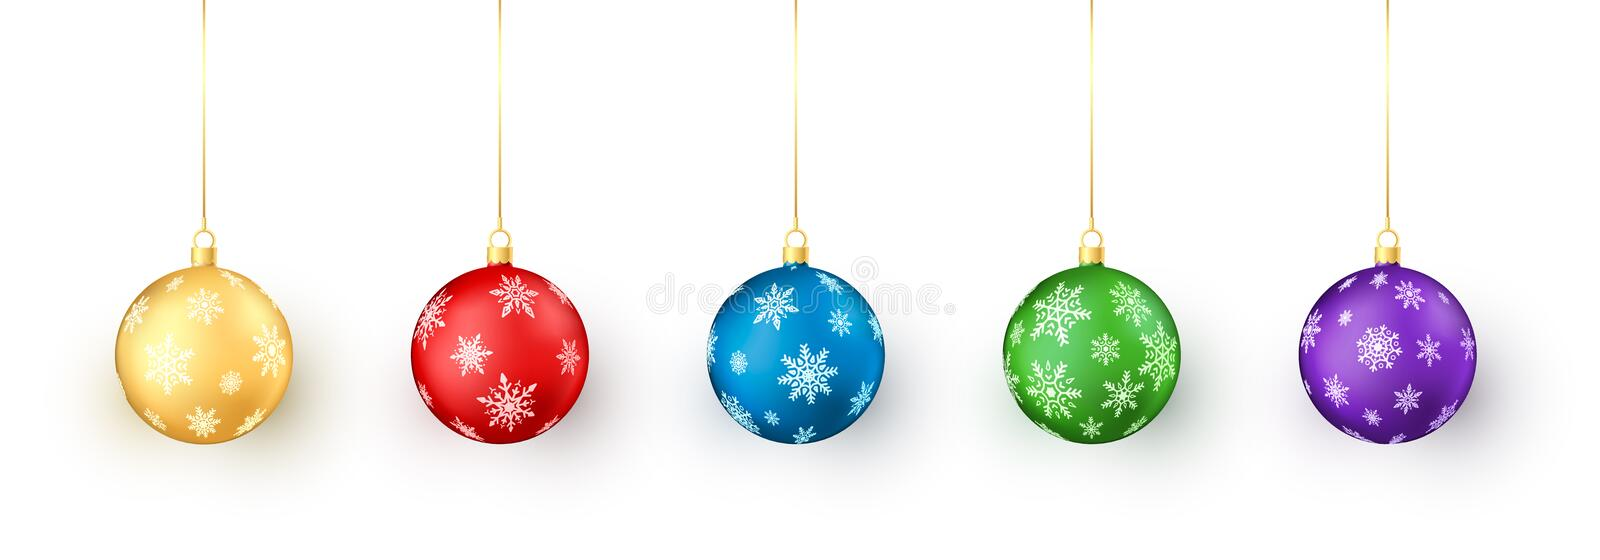 Set of Christmas balls on white background. Colorful Christmas and New Year toys decoration by snowflake vector illustration